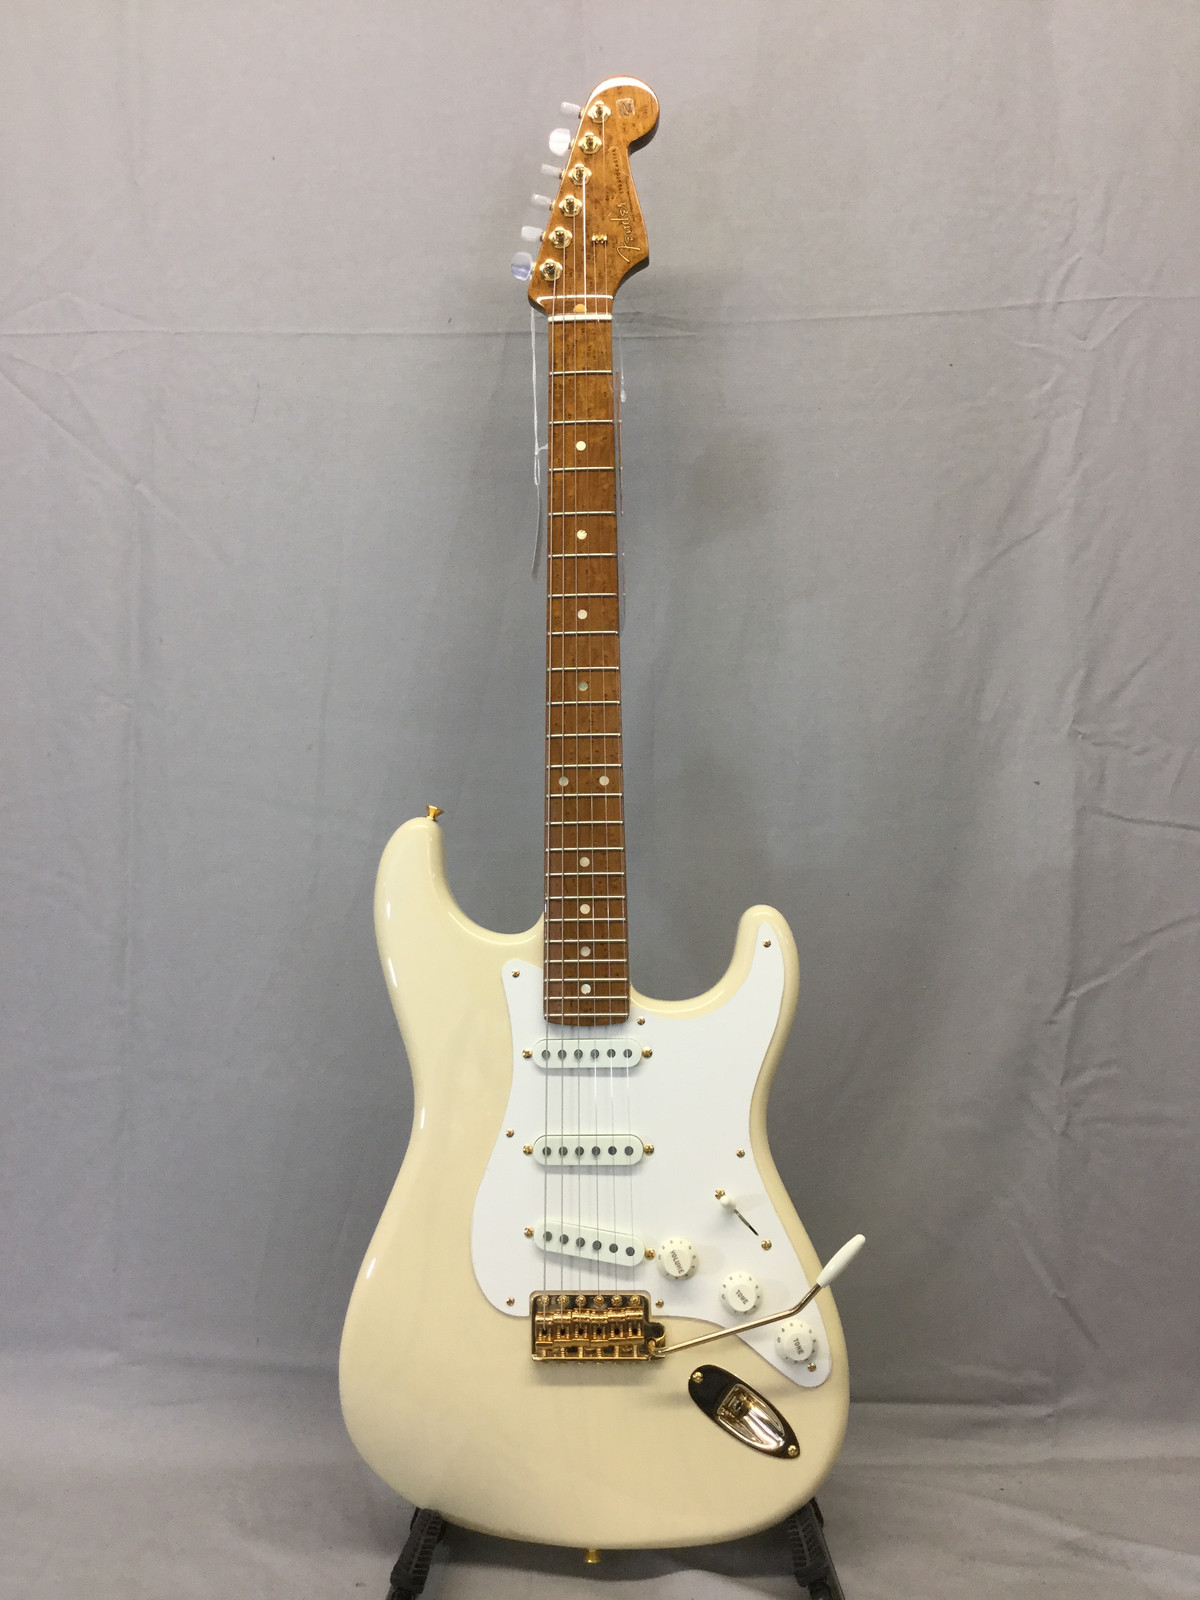 Fender American Custom NOS Roasted Strat - $3650